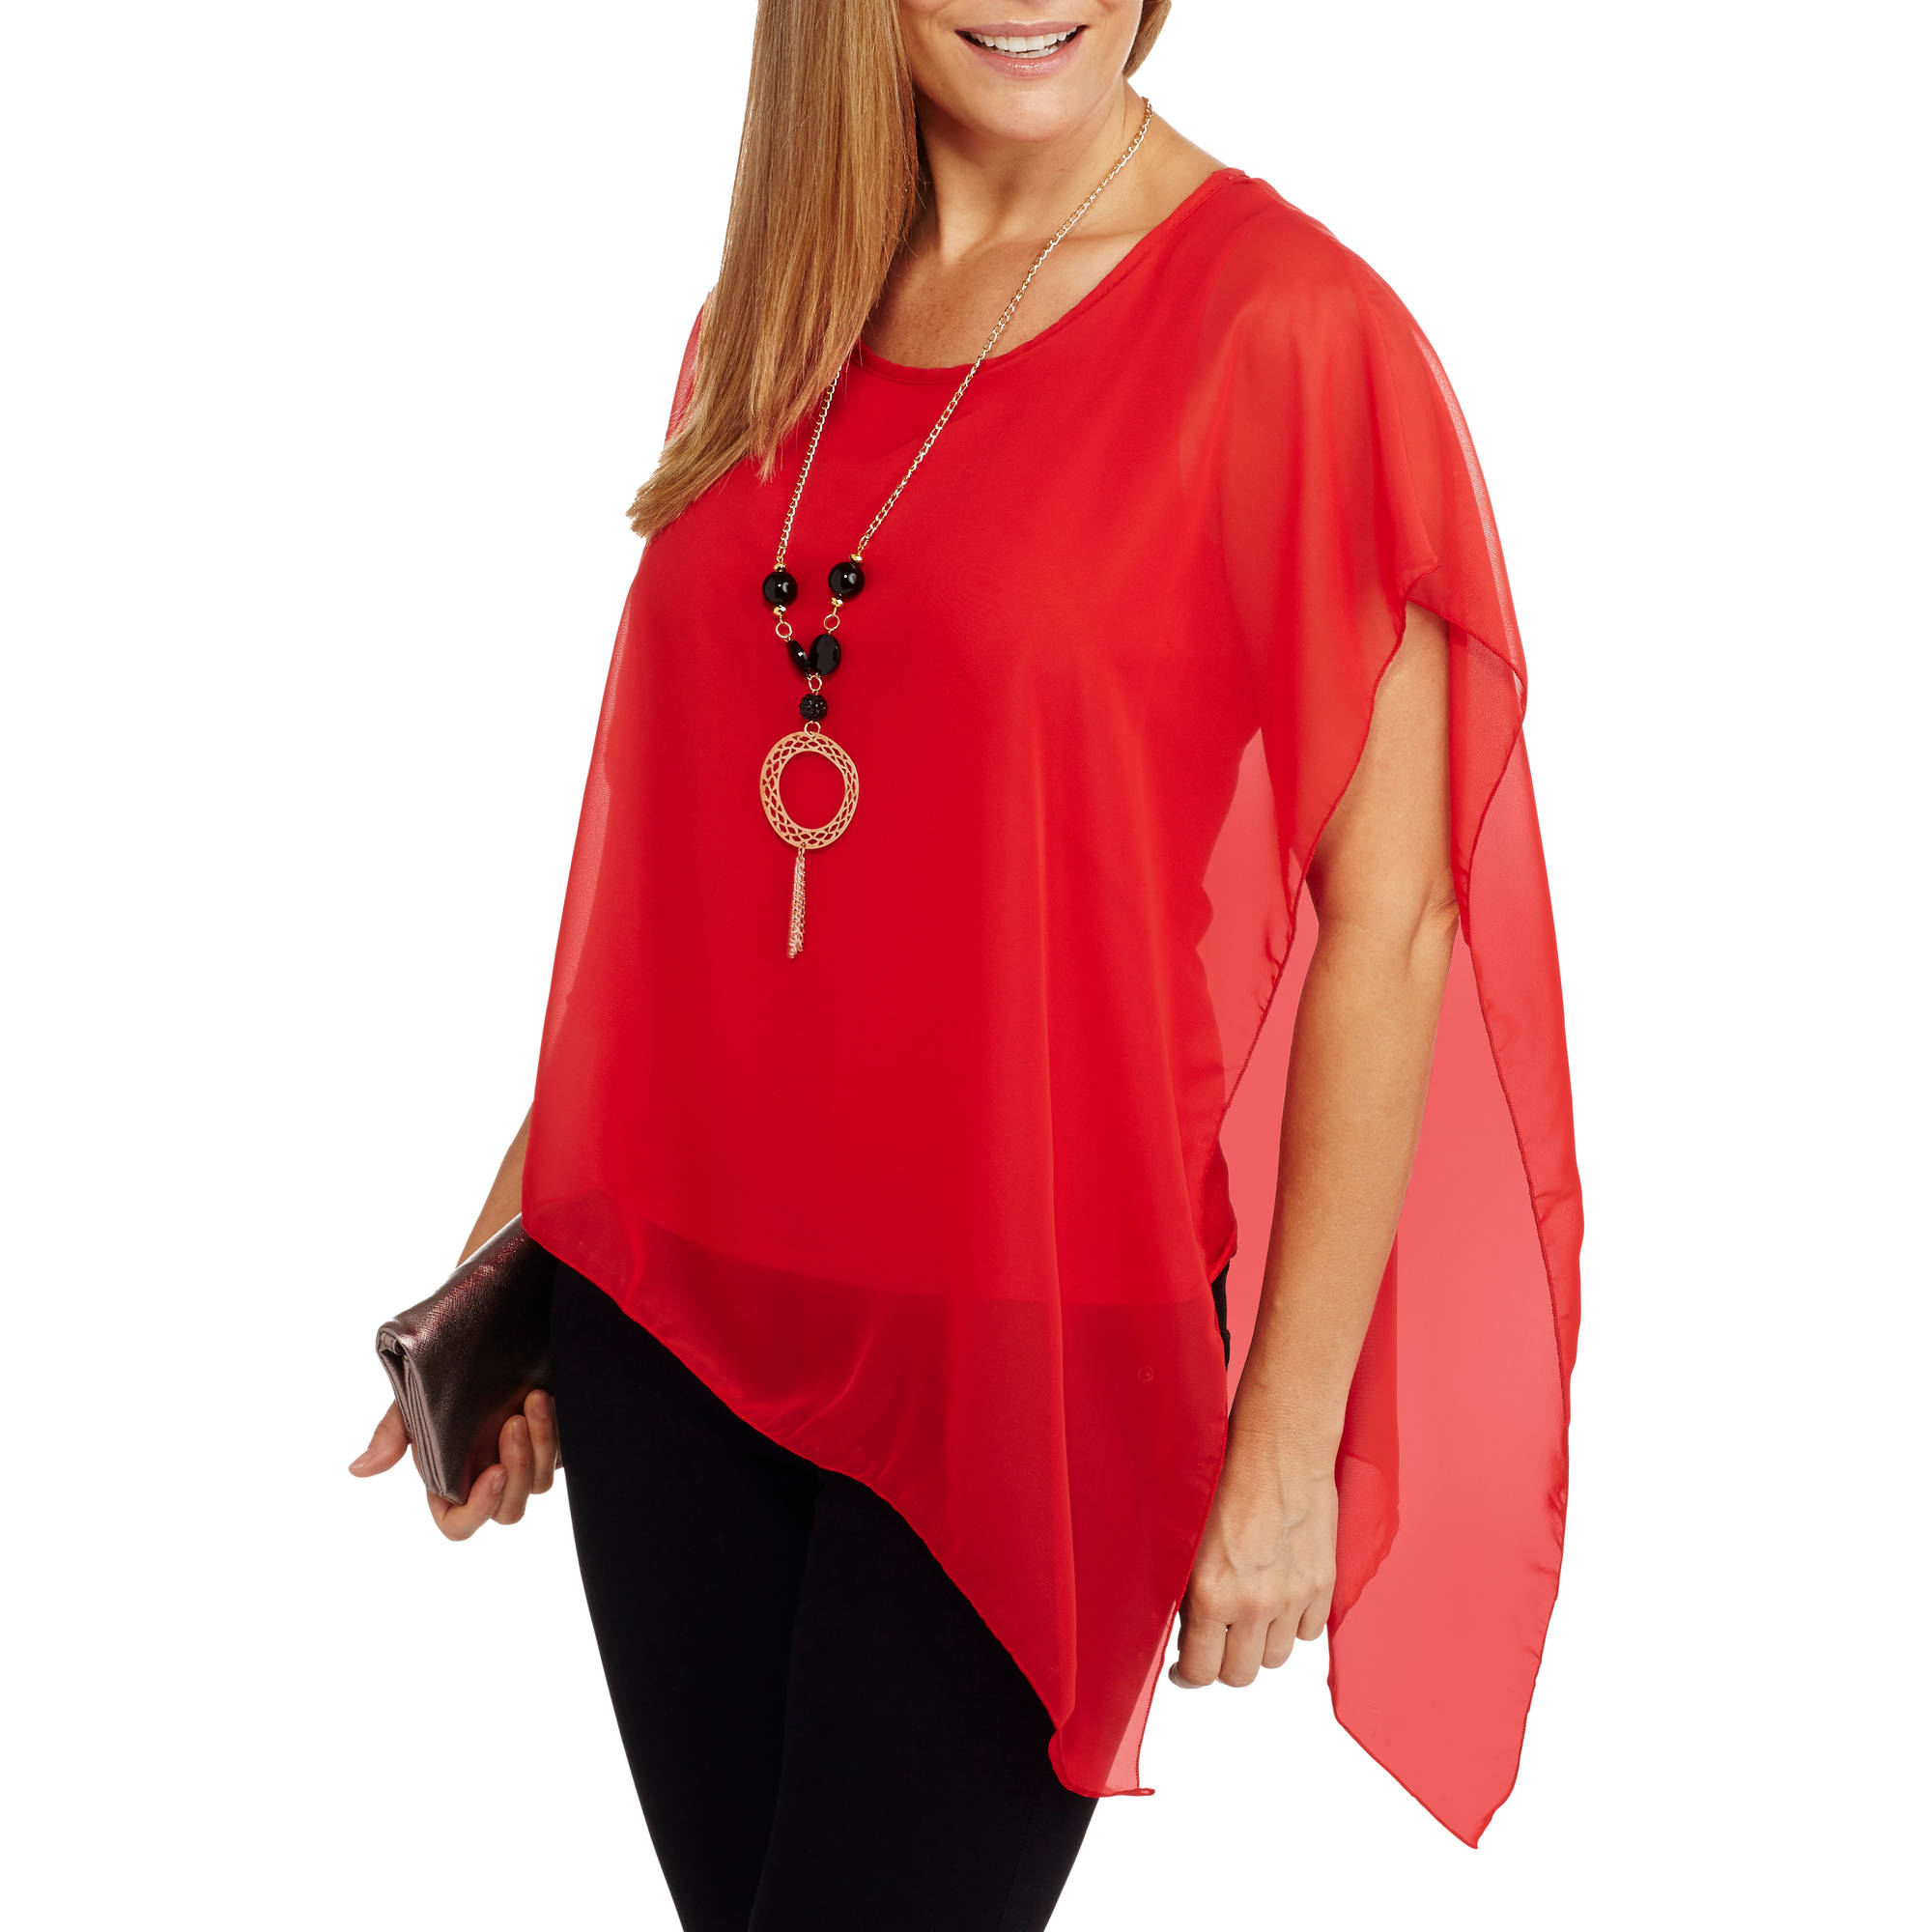 9th Street Apparel Women's Relaxed Fit Chiffon Necklace Blouse